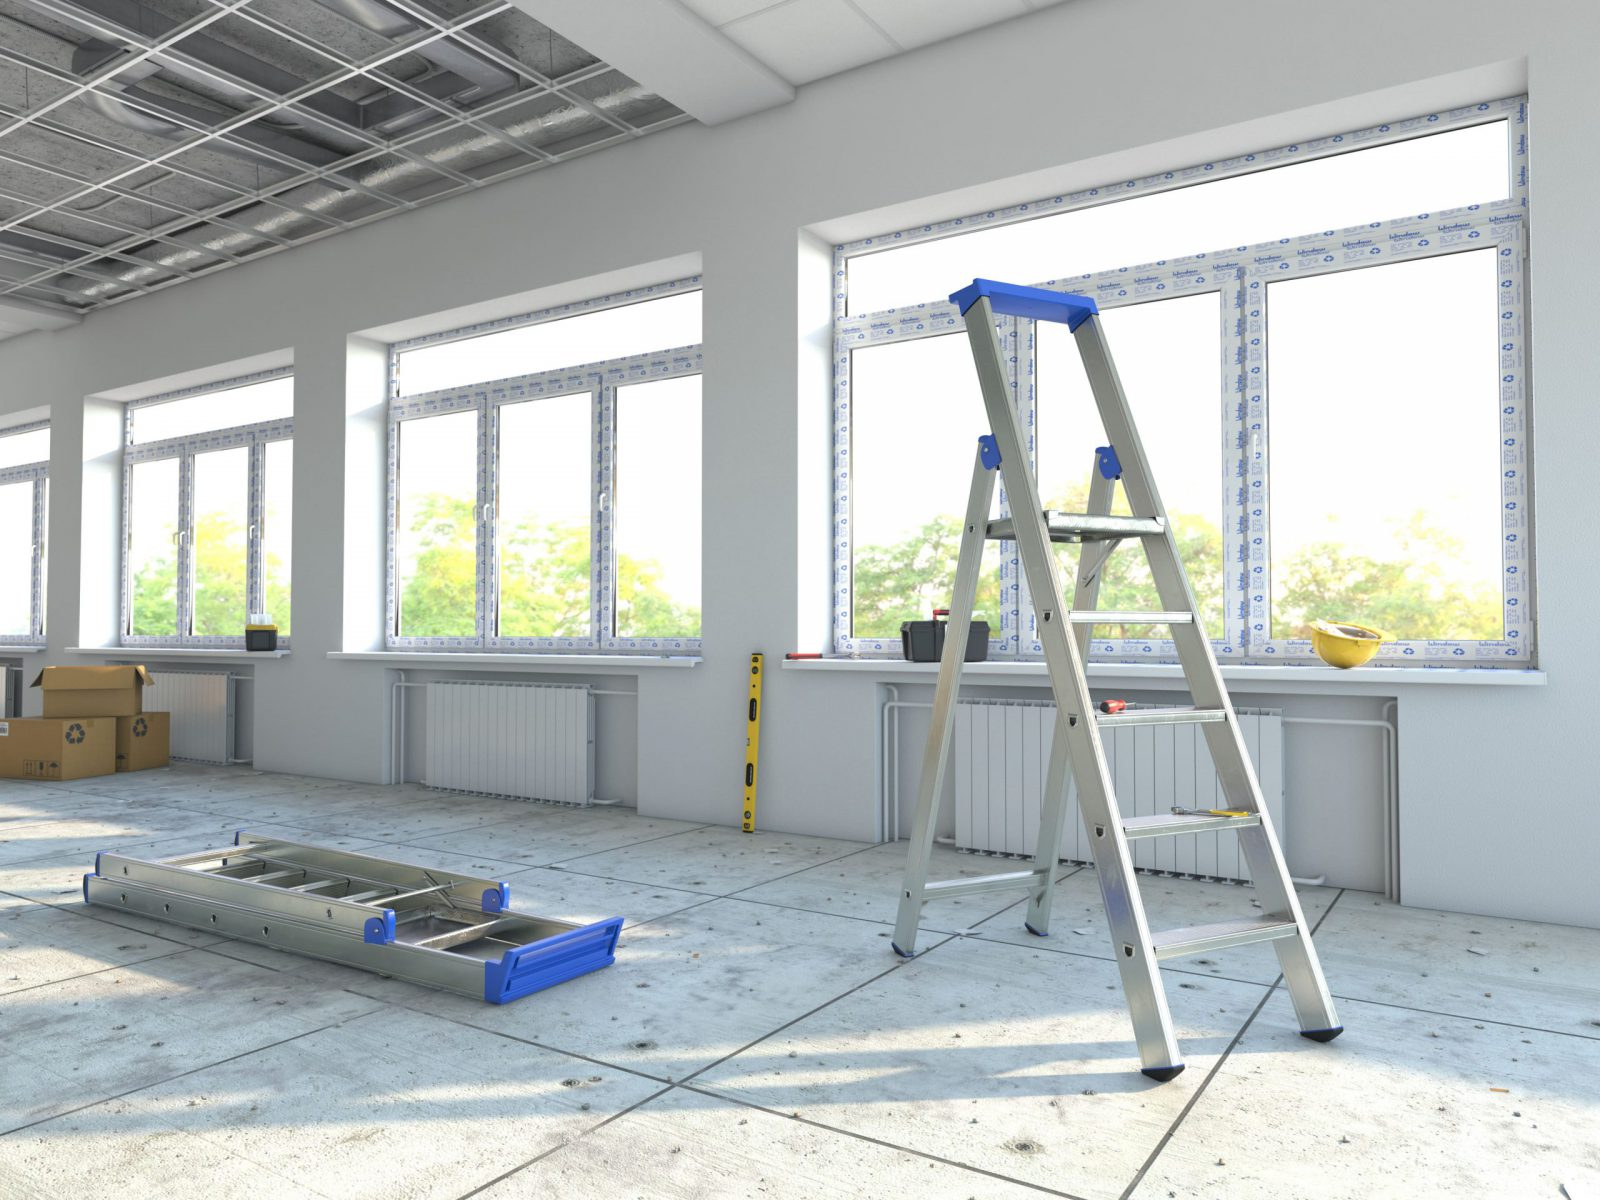 building-renovation-London-commercial-renovation-contractors-London